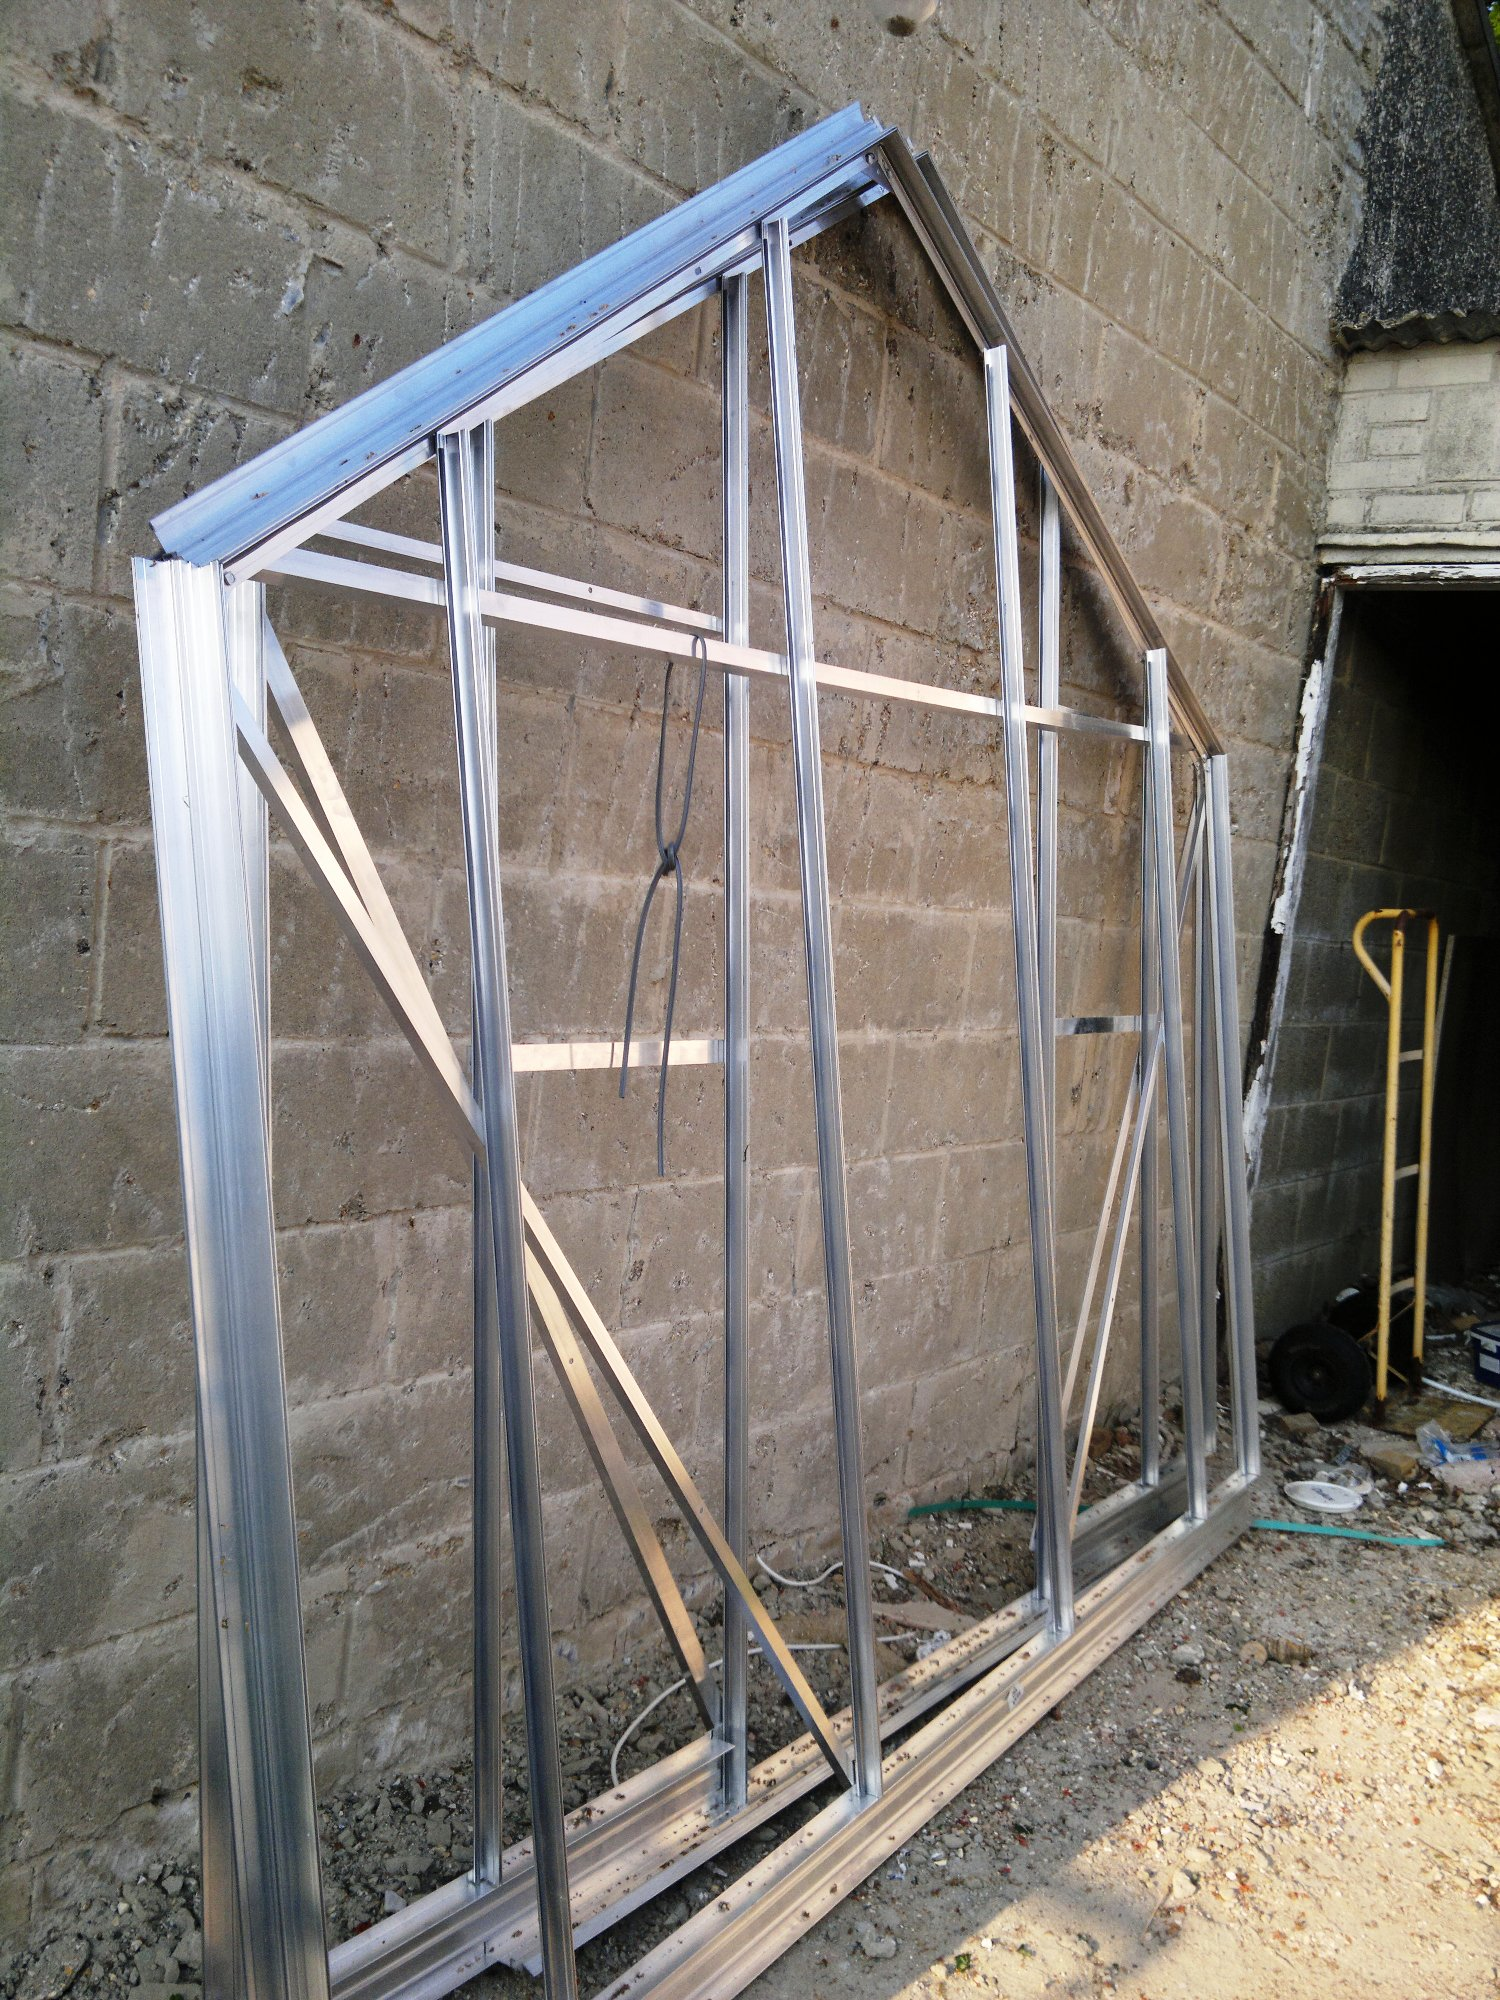 End sections of one of the main glasshouses ready for assembly